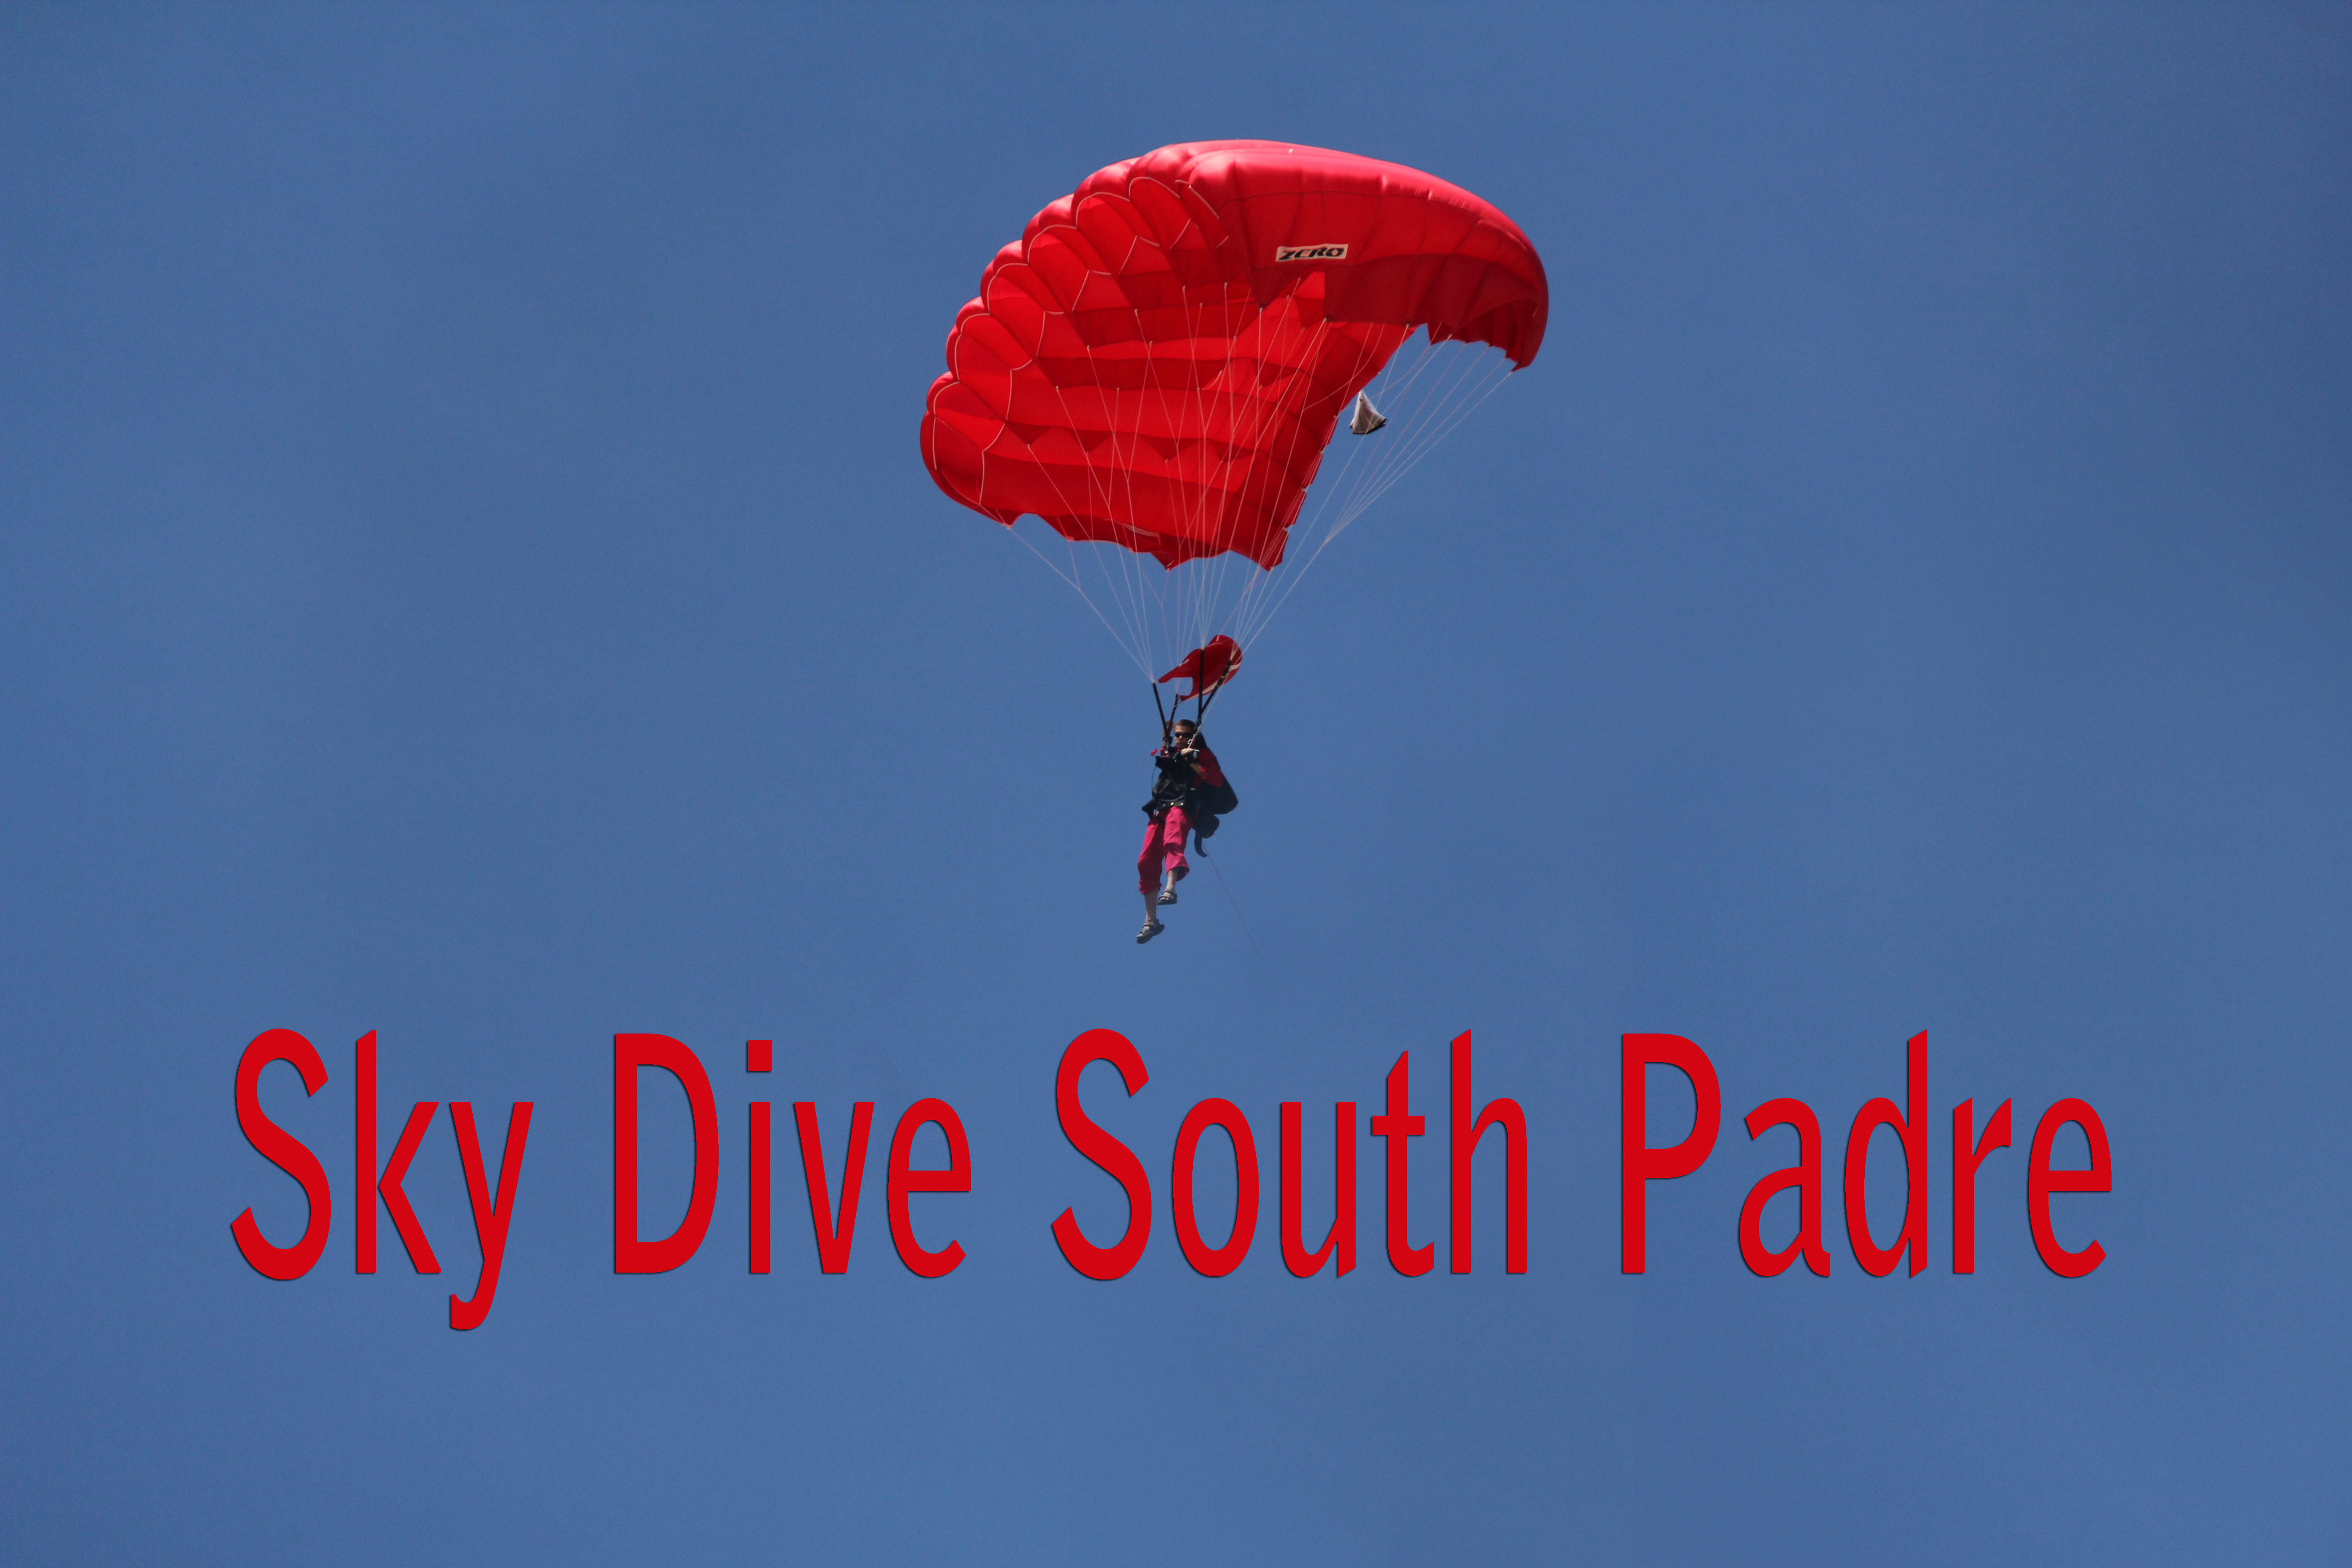 Sky Dive South Padre